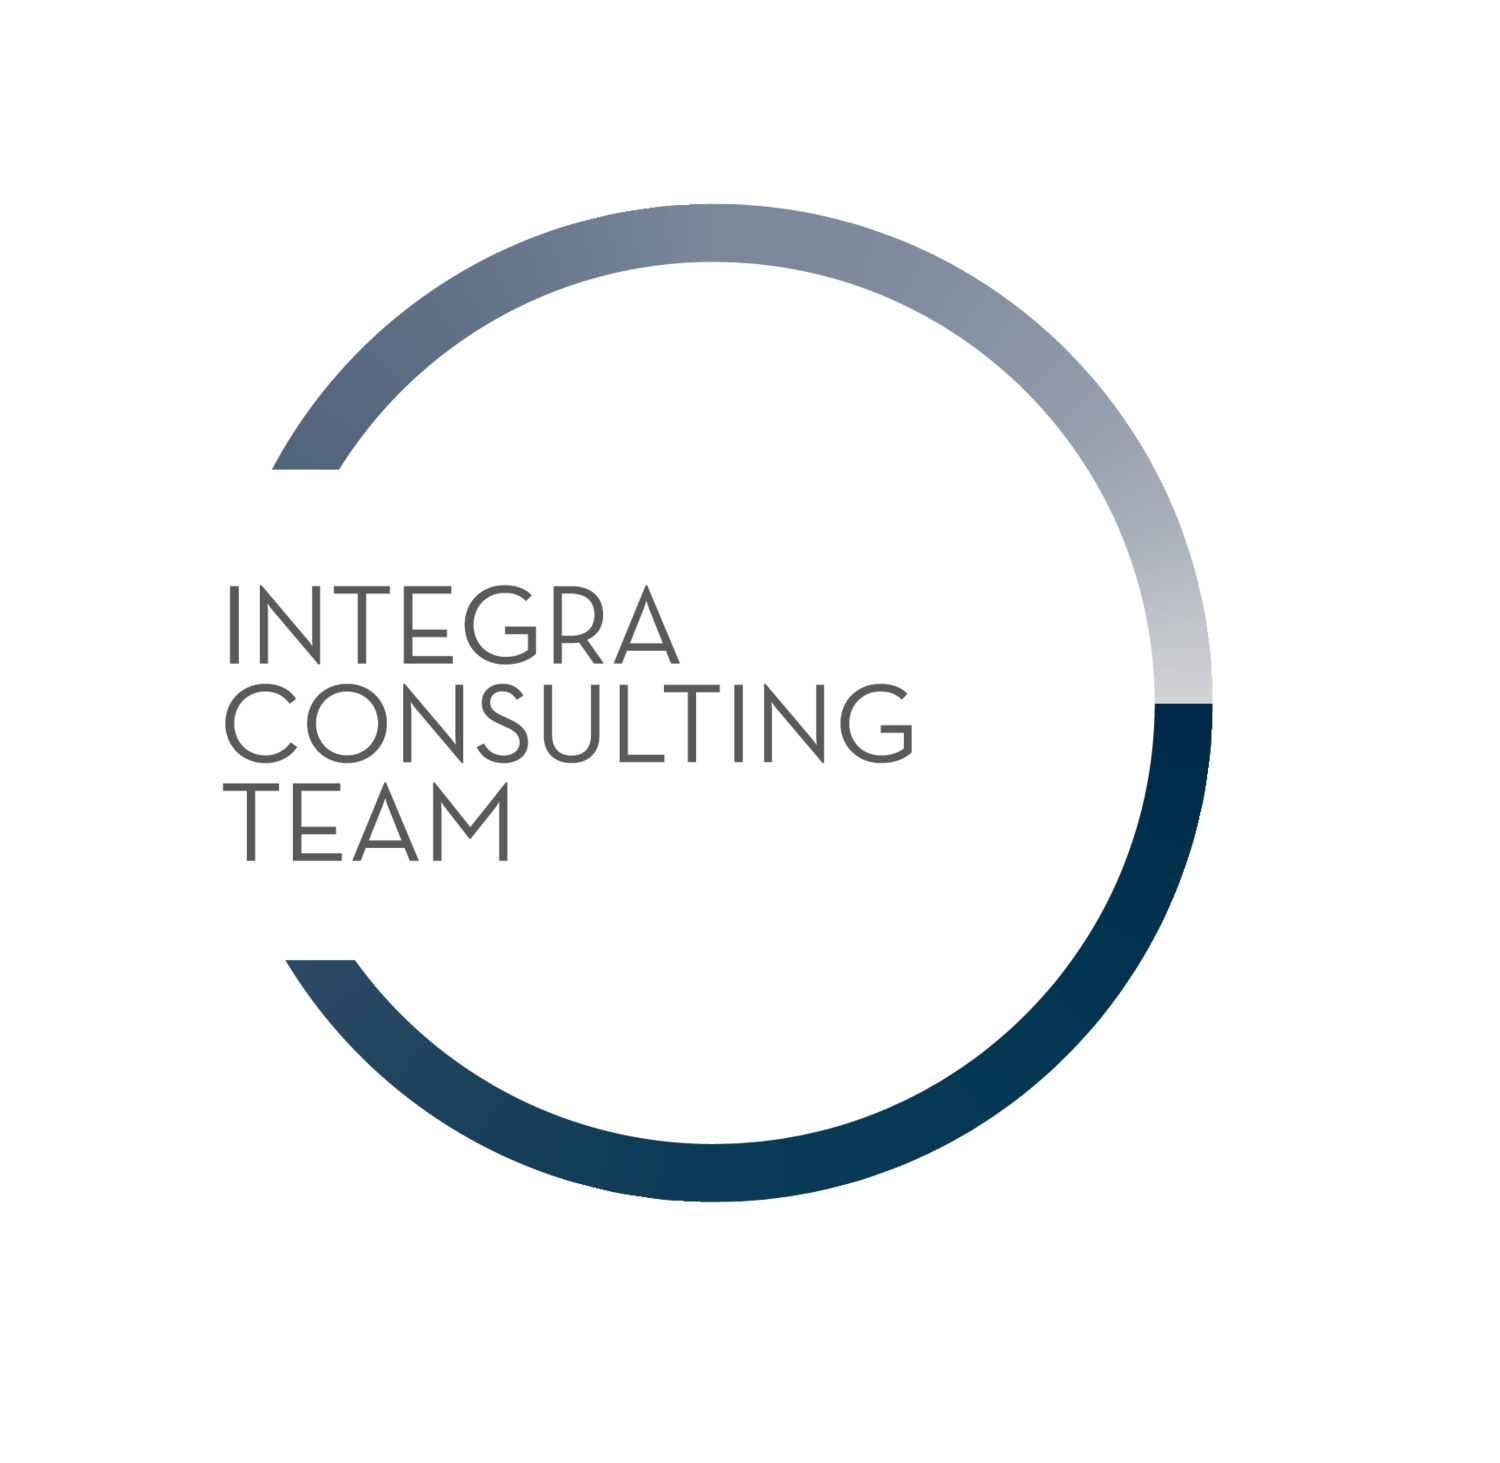 Integra Consulting Team